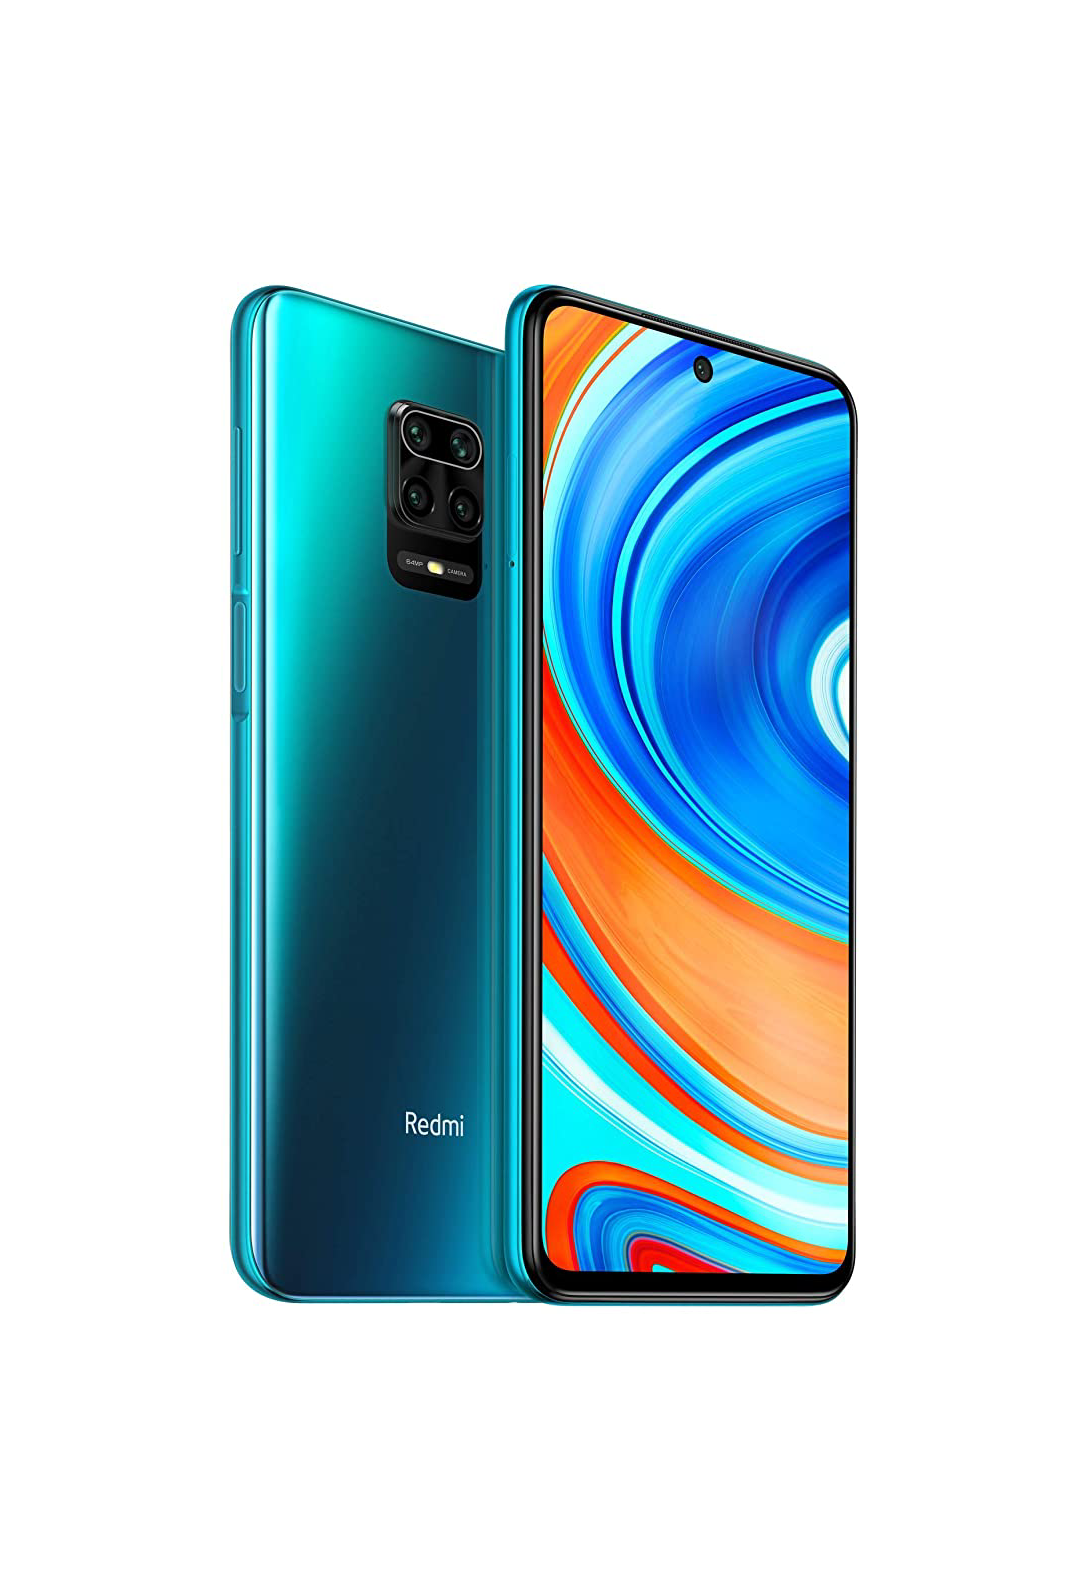 Redmi Note 9 Pro Max Aurora Blue 6gb Ram 64gb Storage In 2020 Note 9 Xiaomi Quad